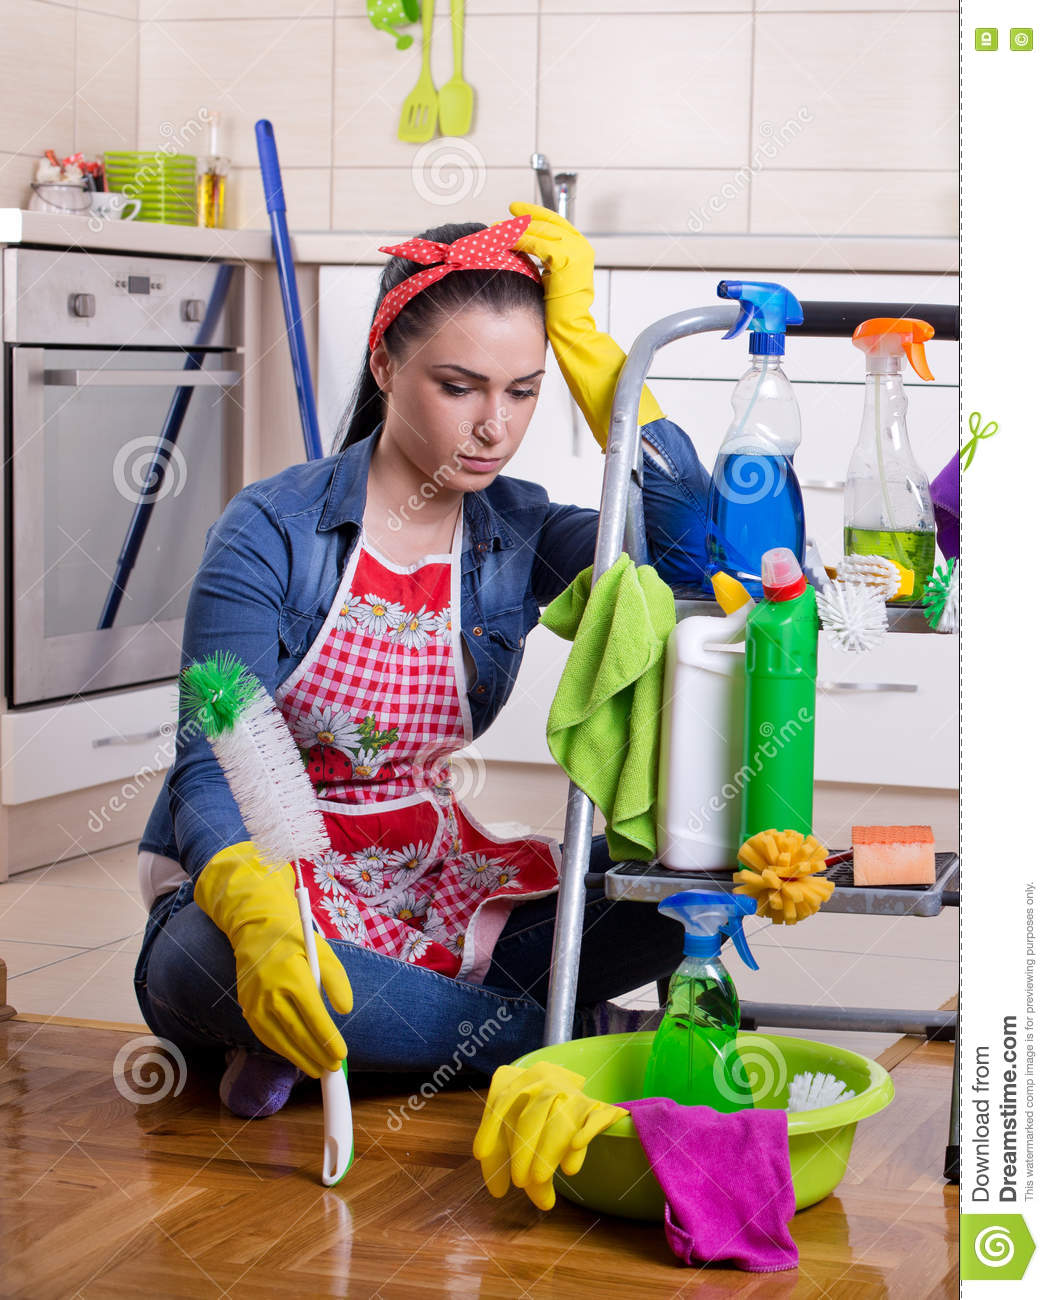 Tired And Unhappy Cleaning Lady Stock Photo Image 71819726